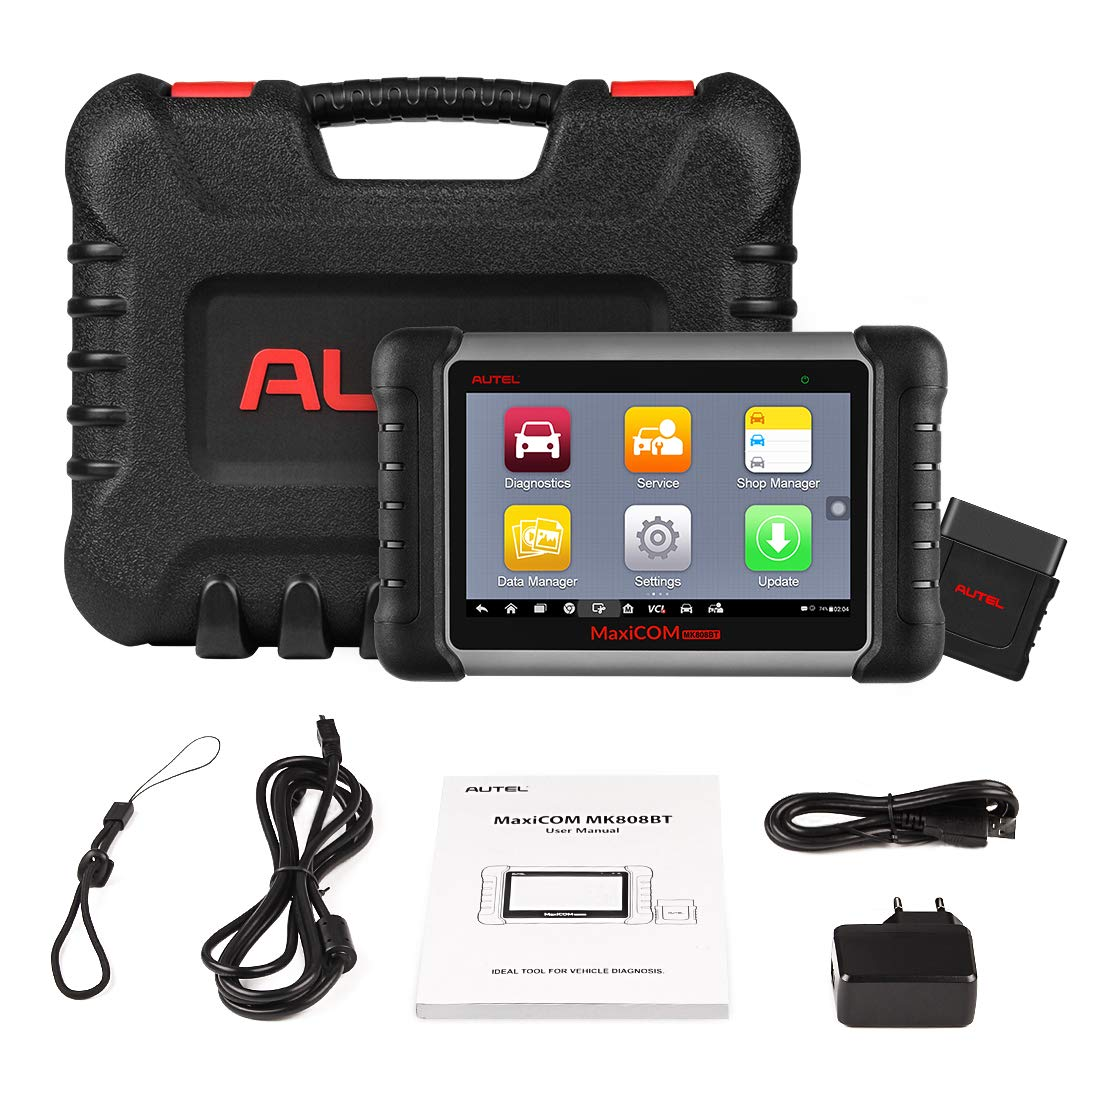 Autel OBD2 Scanner MaxiCOM MK808BT Diagnostic Tool, Upgraded Version of MK808, with MaxiVCI Supports Full System Scan & IMMO/EPB/SAS/BMS/TPMS/DPF by Autel (Image #2)